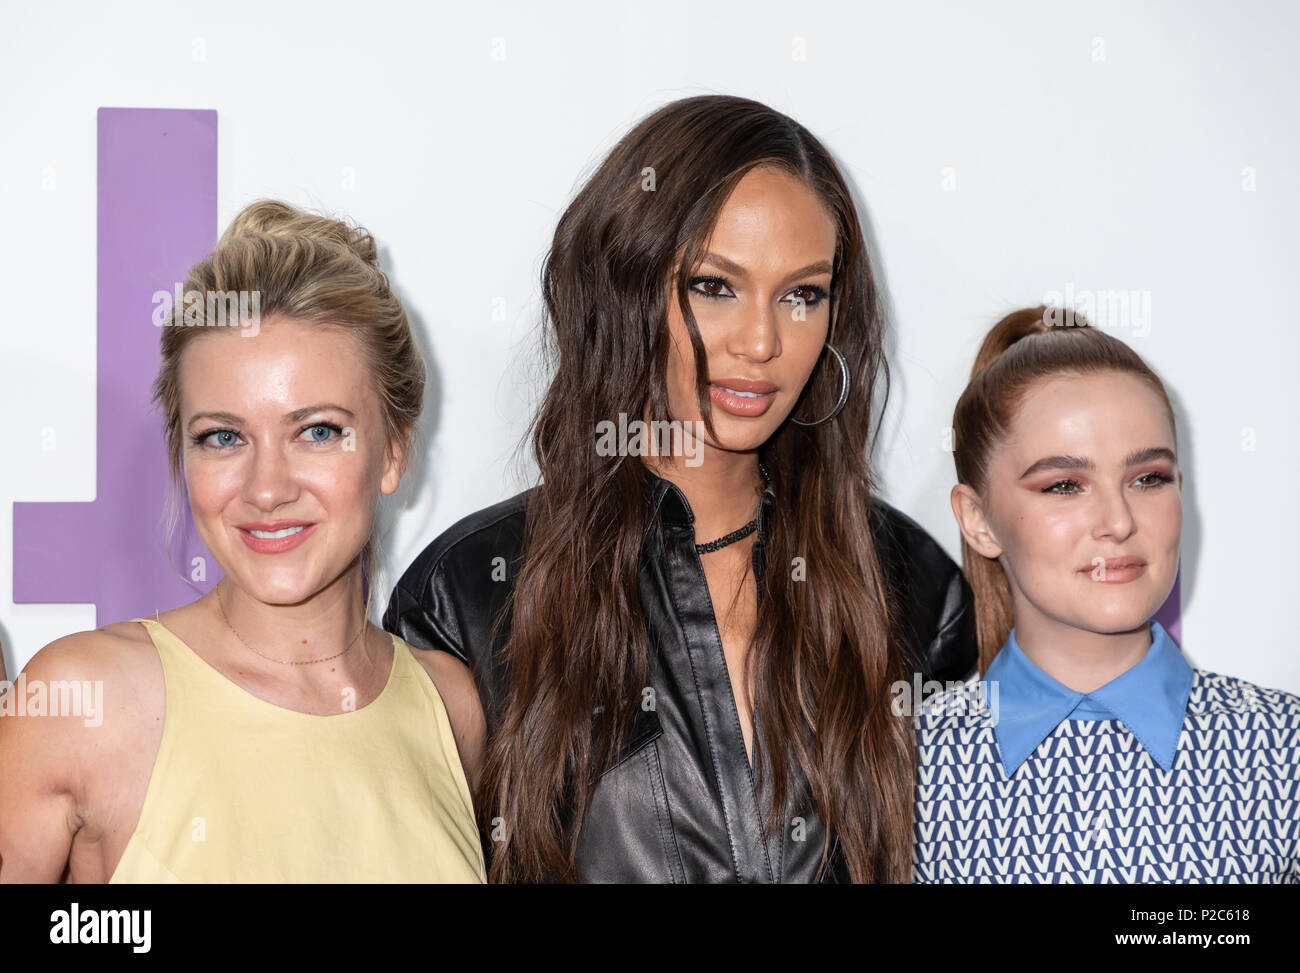 New York, NY, USA - June 12, 2018: Actors Meredith Hagner, Joan Small and Zoey Deutch attend the New York special screening of the Netflix film 'Set I - Stock Image